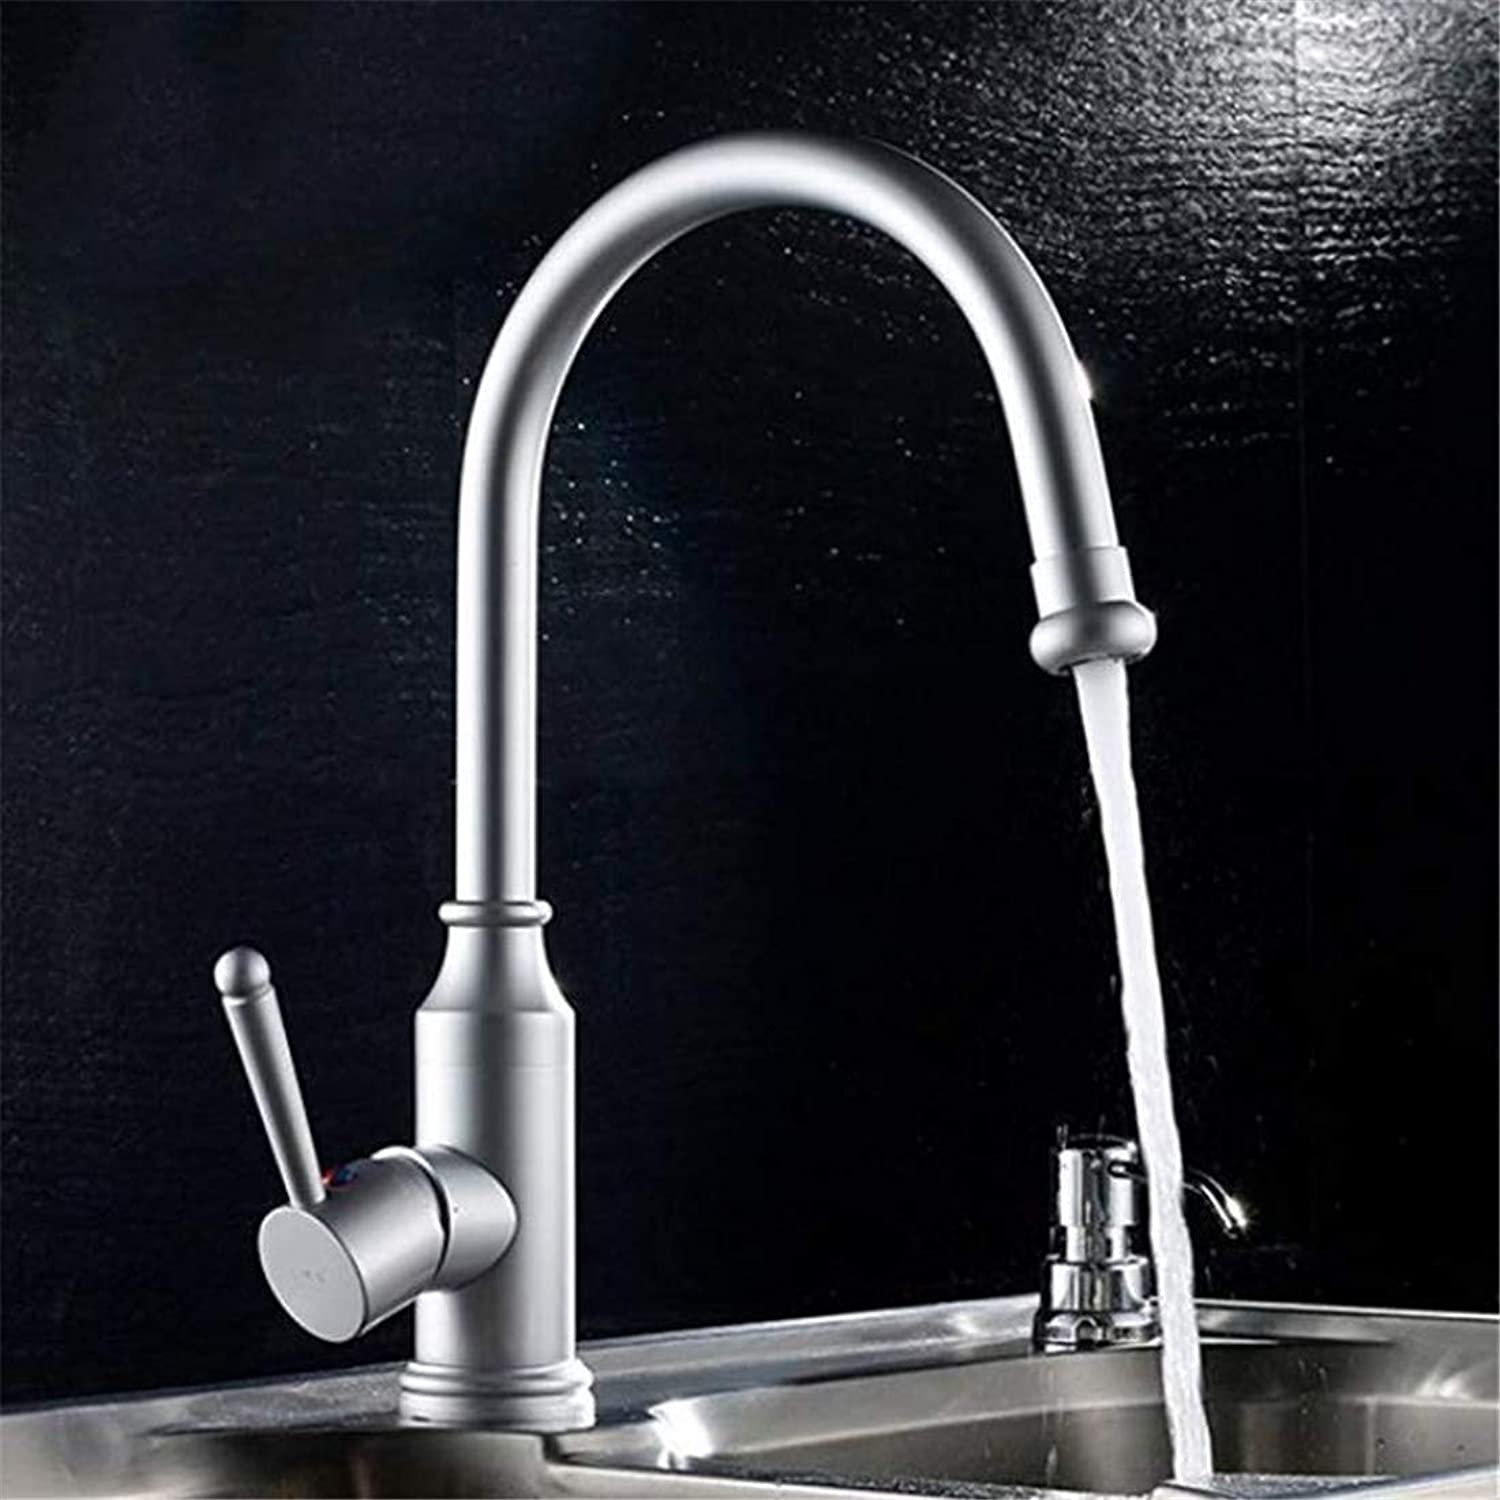 Faucet Bathroom Kitchen Luxury Modern Faucet Space Aluminum Faucet Kitchen Faucet Sink Sink Hot and Cold Mixing Faucet